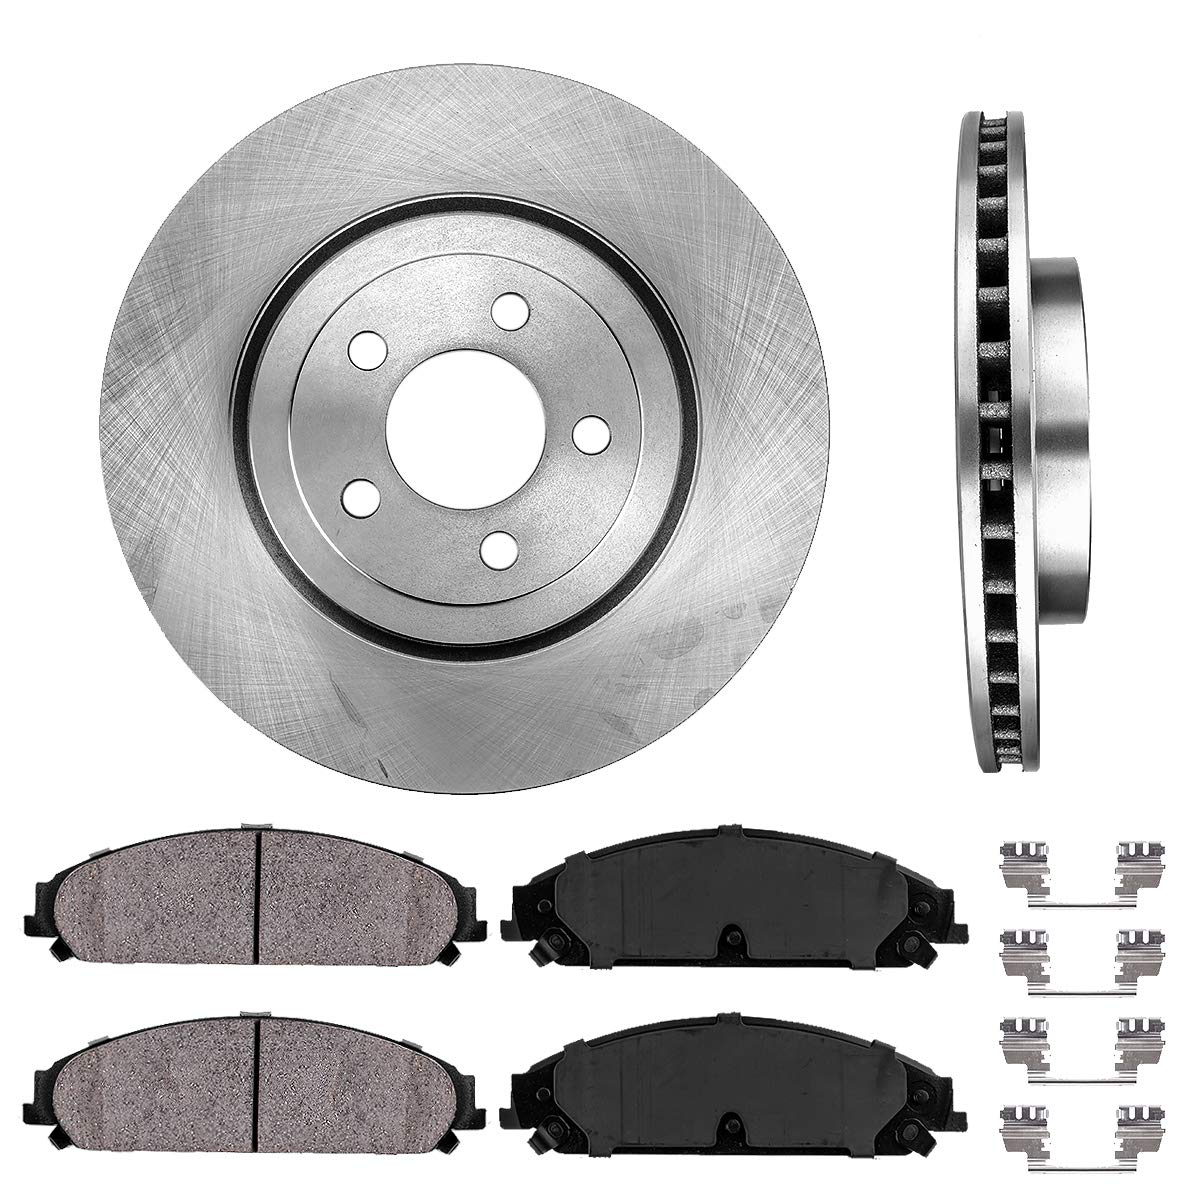 2005 2006 Fit Chrysler 300 Rotors Ceramic Pads F+R See Desc. OE Replacement